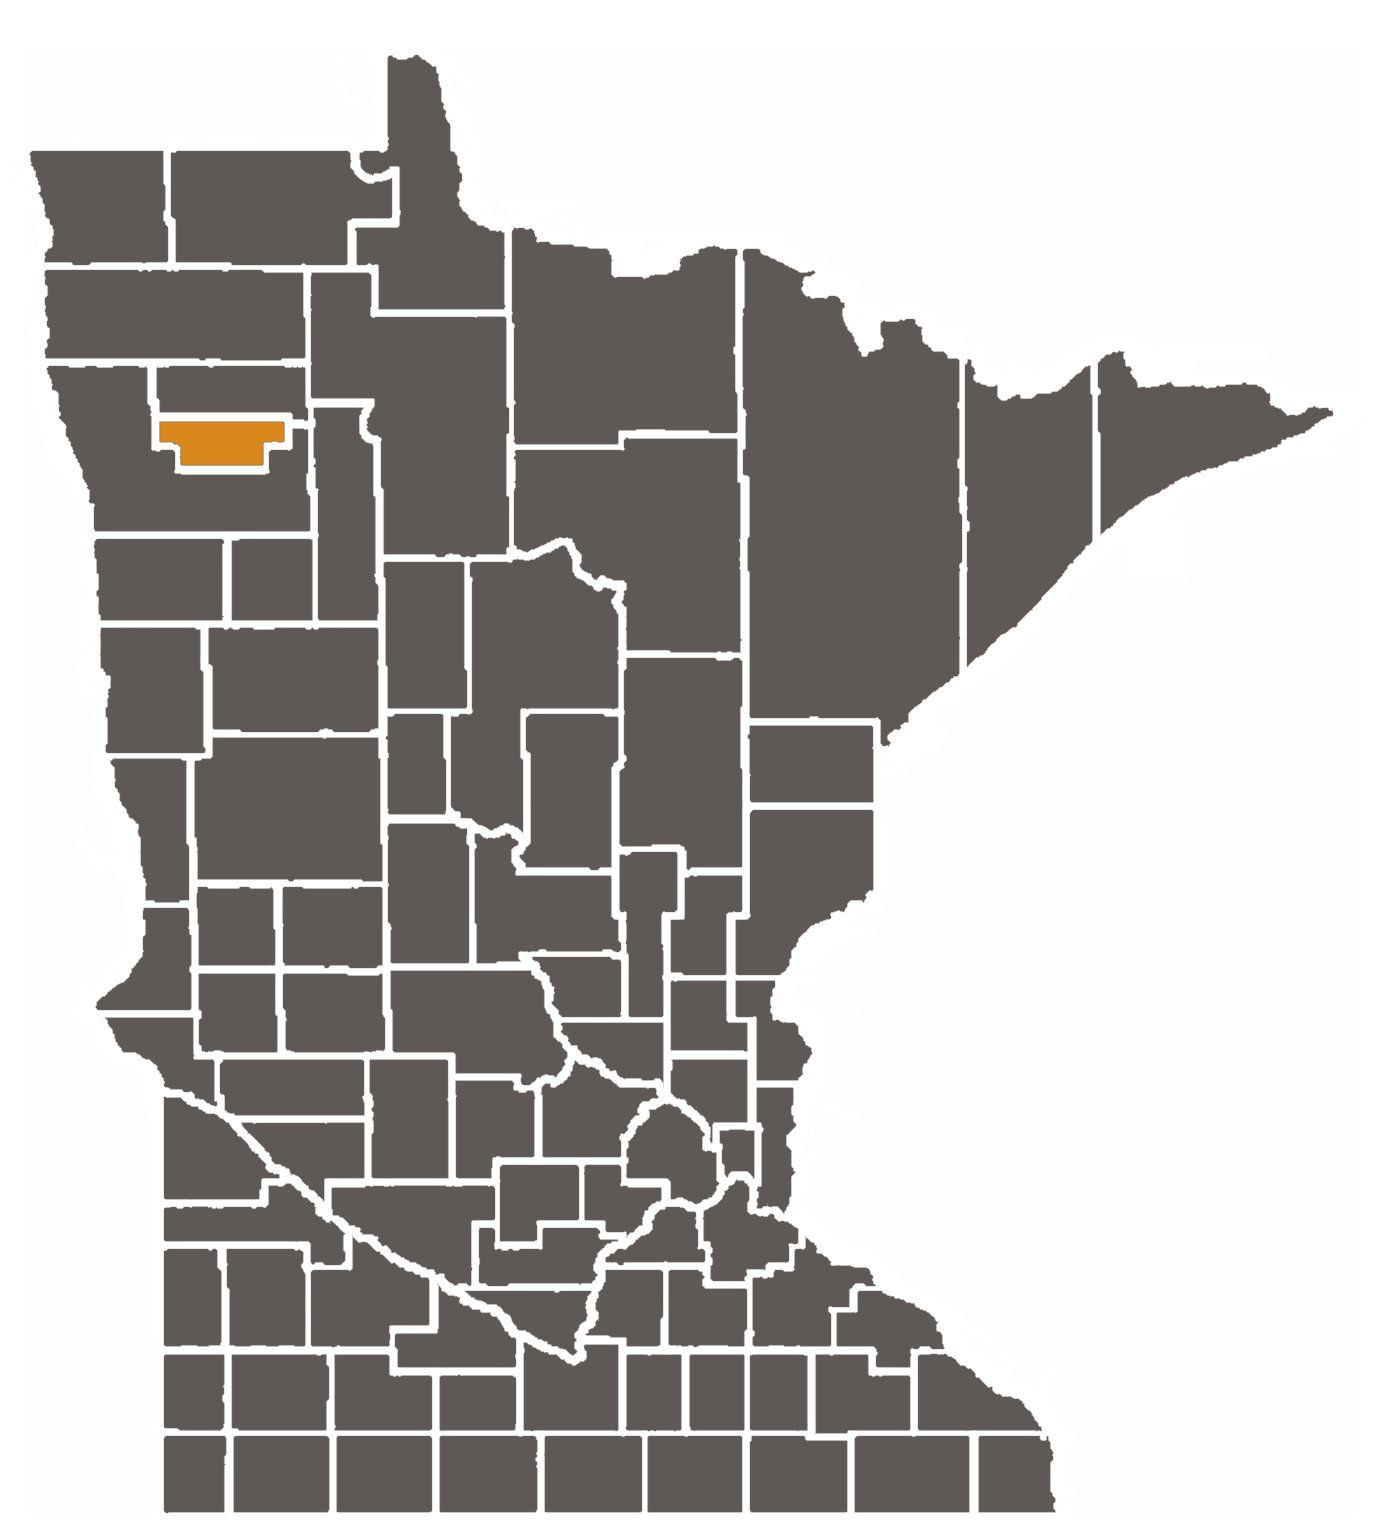 Minnesota map with Red Lake County highlighted.